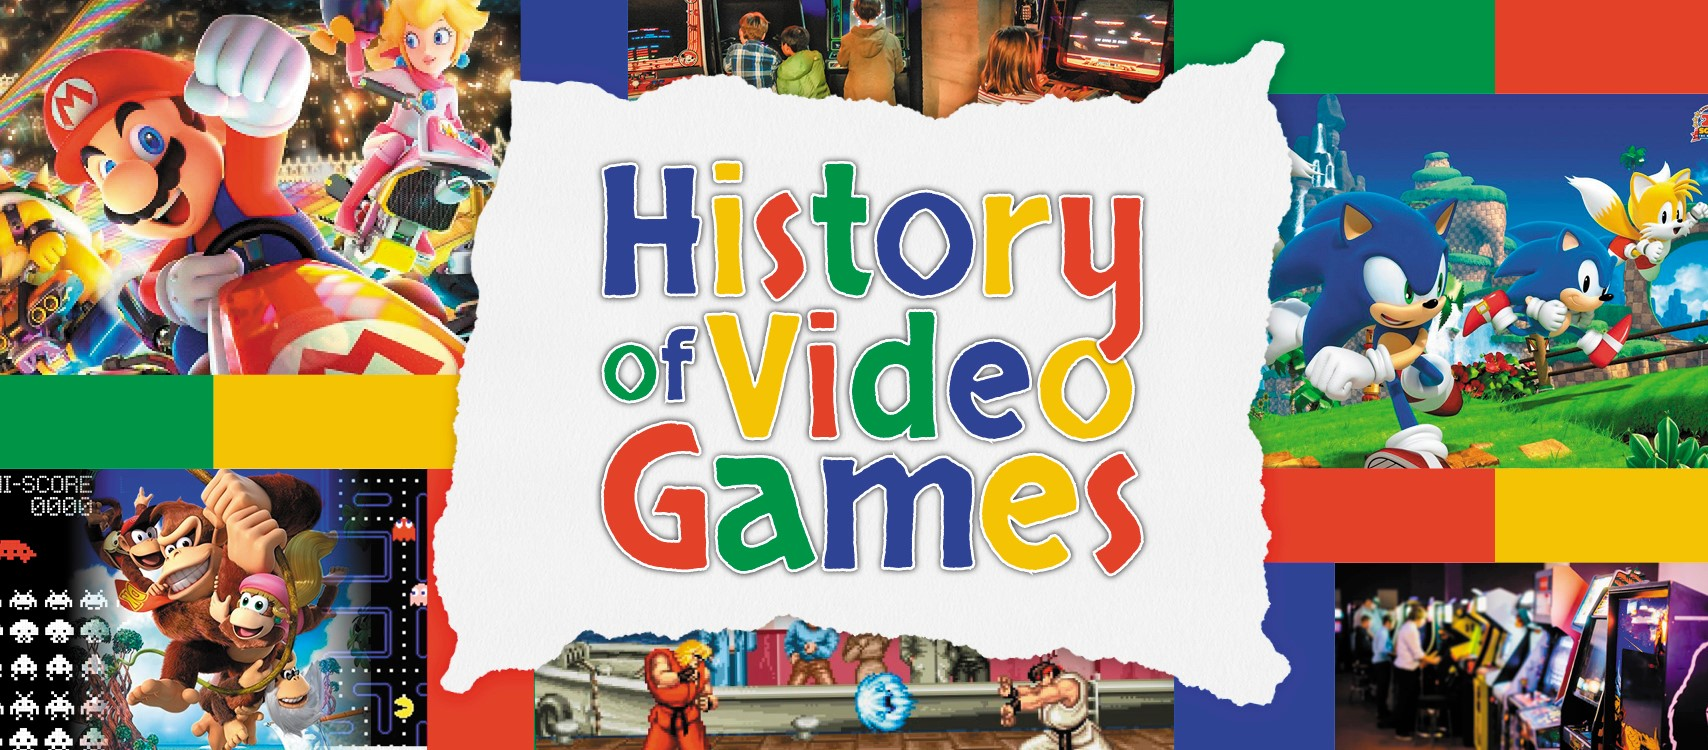 Gamer Heaven in Bristol: History of Video Games Show